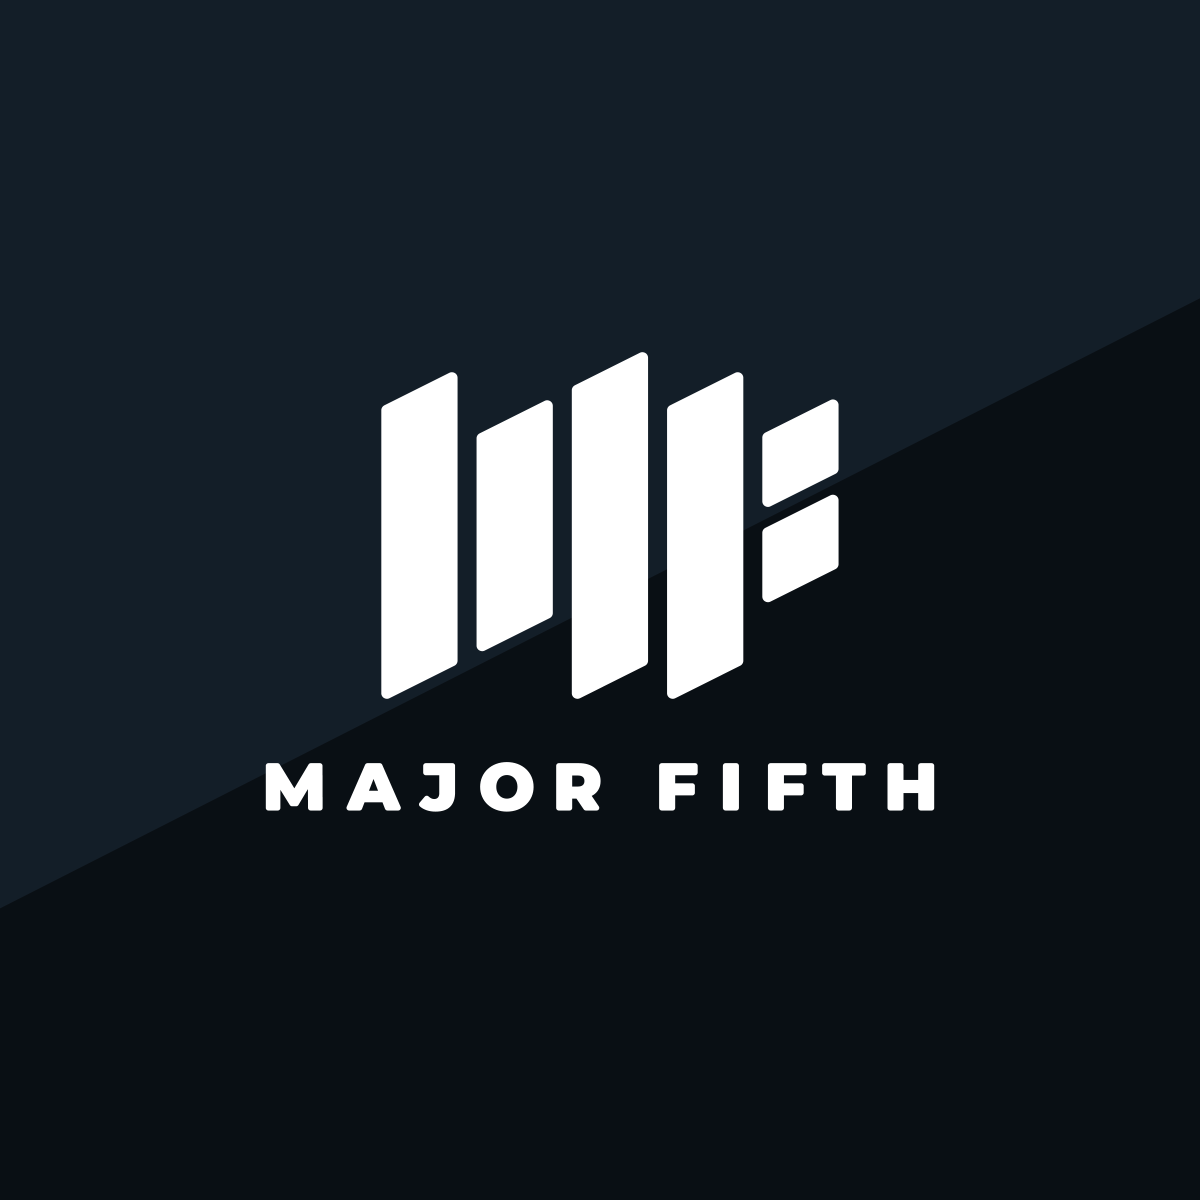 Major Fifth